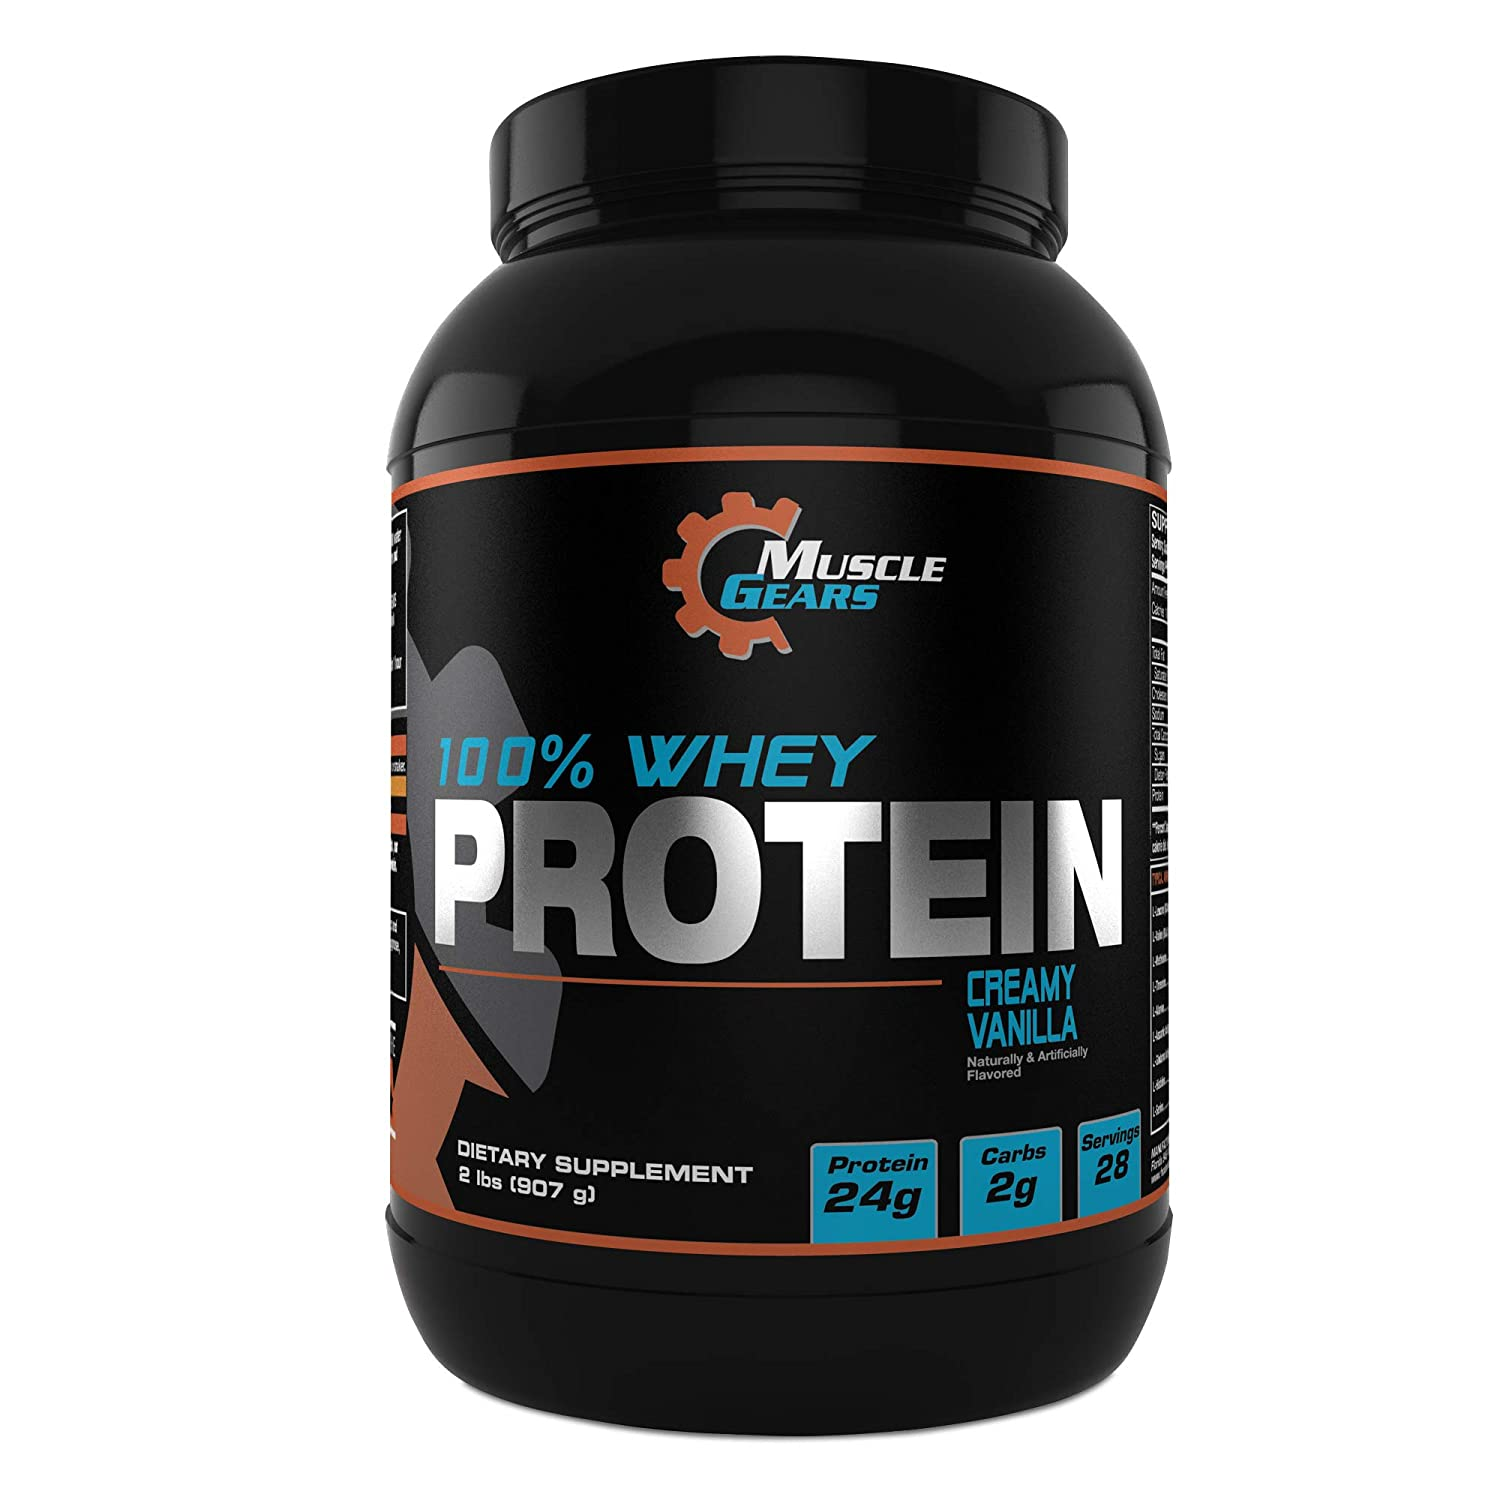 Muscle Gears 100 Whey Protein 2lb, Vanilla